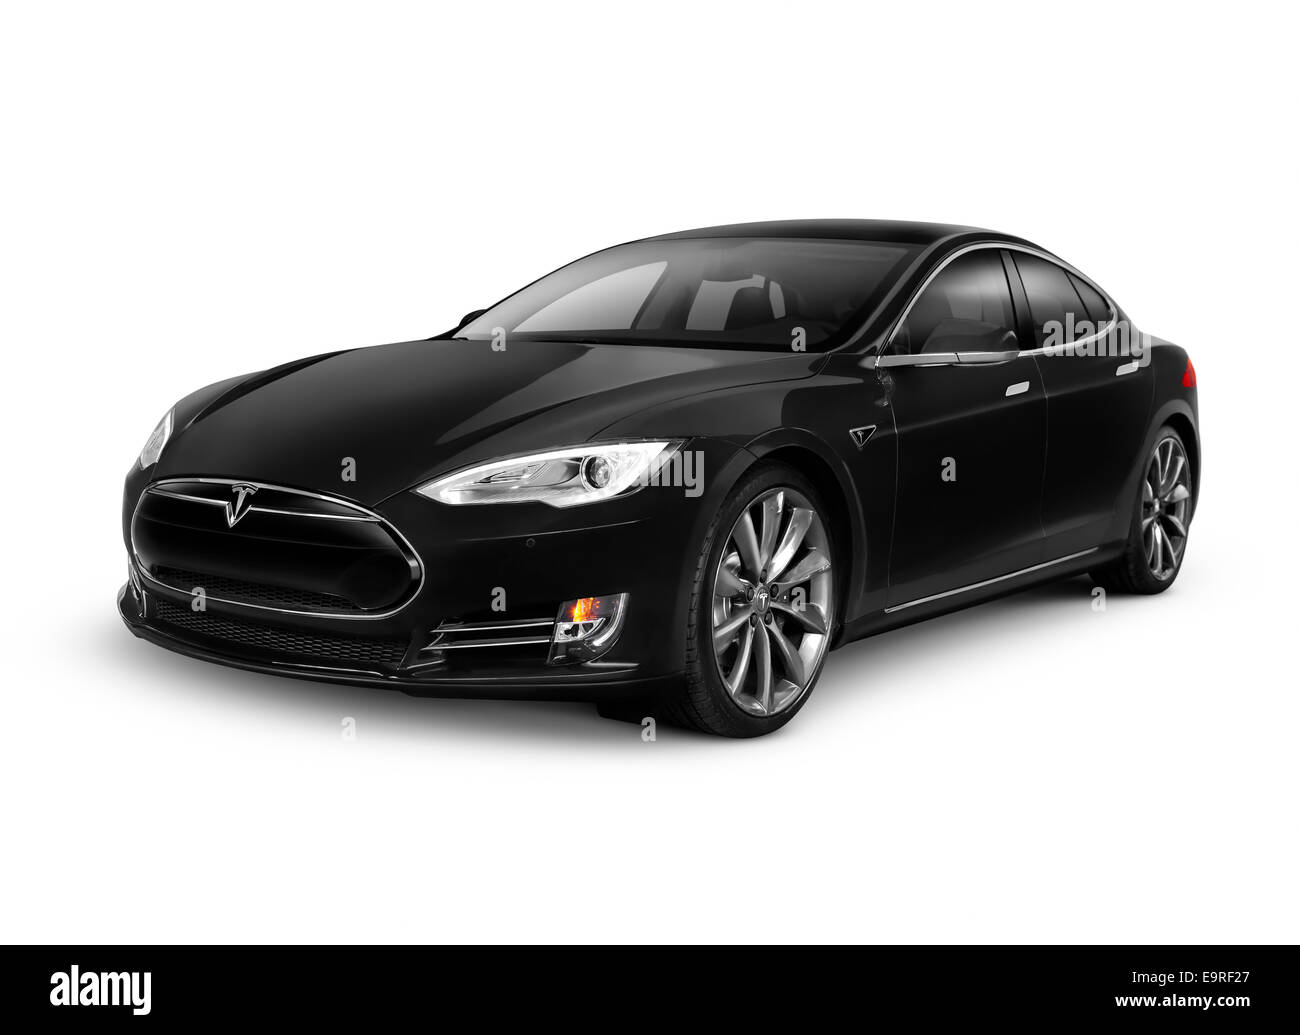 Black 2014 Tesla Model S luxury electric car isolated on white background with clipping path - Stock Image